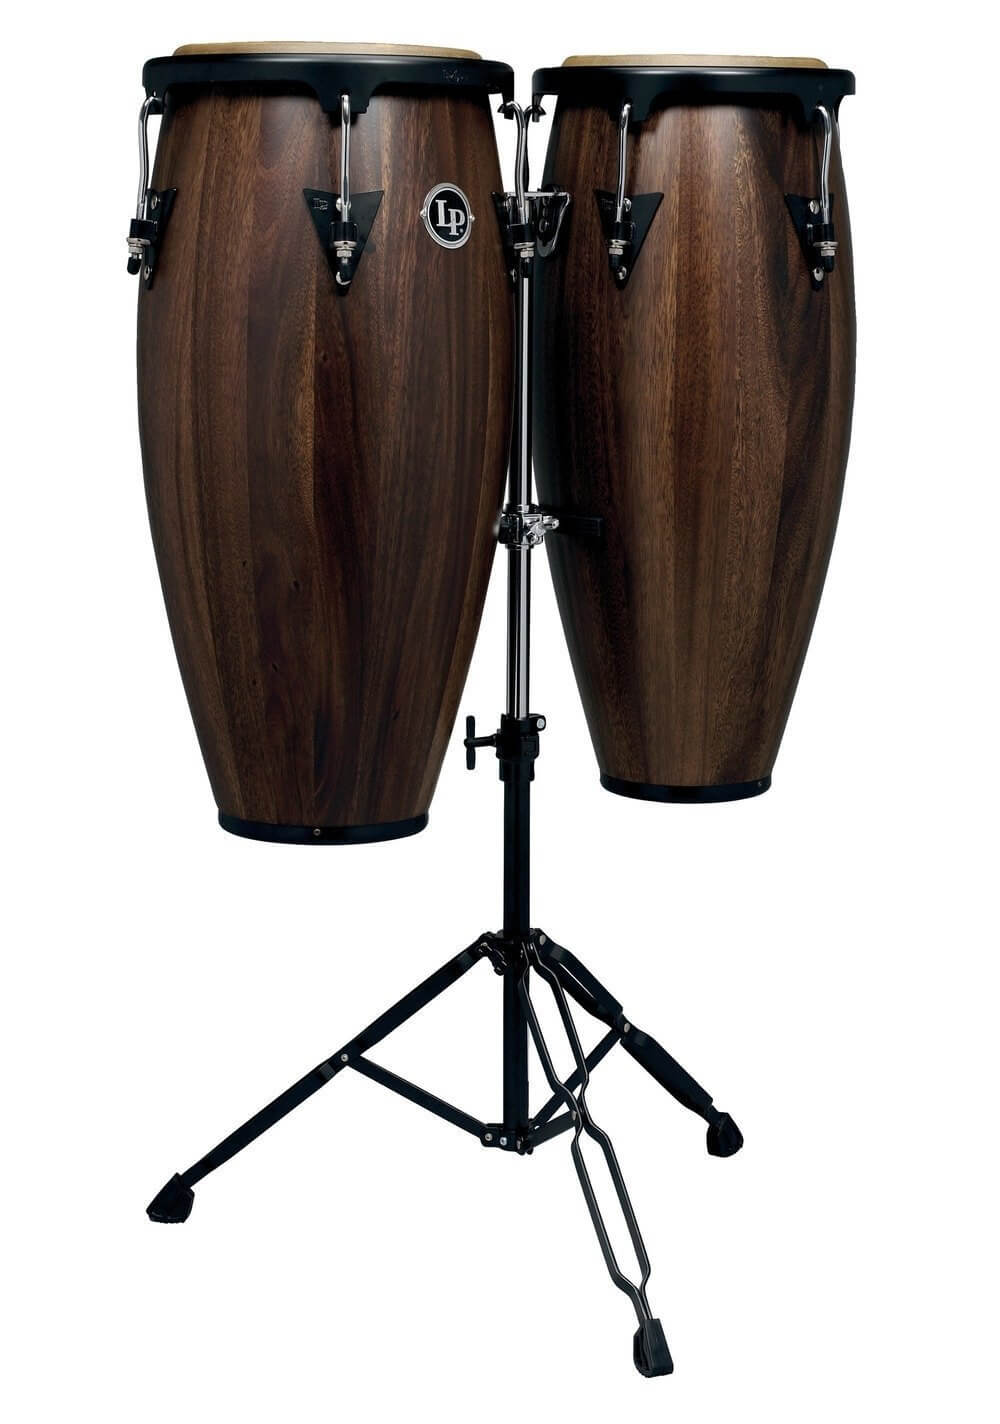 Set Congas Latin Percussion Lpa646 10